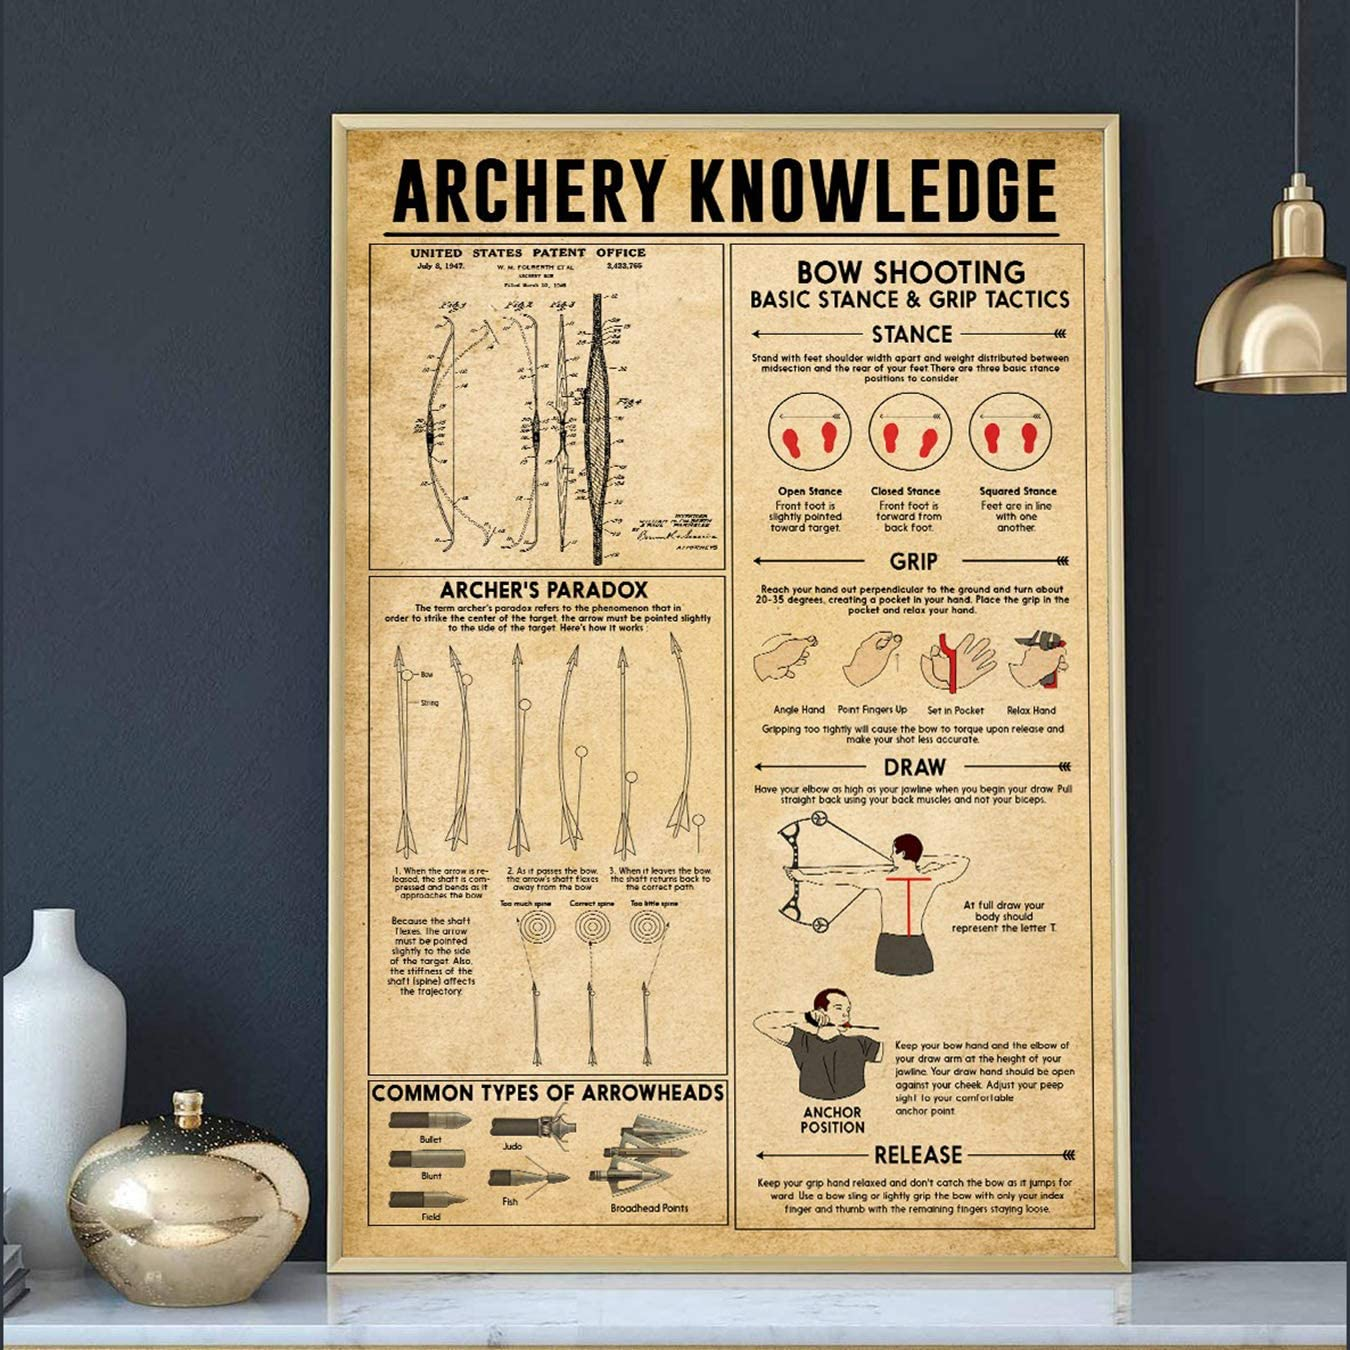 3M Poster - Unframed Poster Wall Art Archery Knowdge- House Decor - Motivational Wall Art - Aesthetic Posters - Vintage Posters (Vintage Color, Small 11